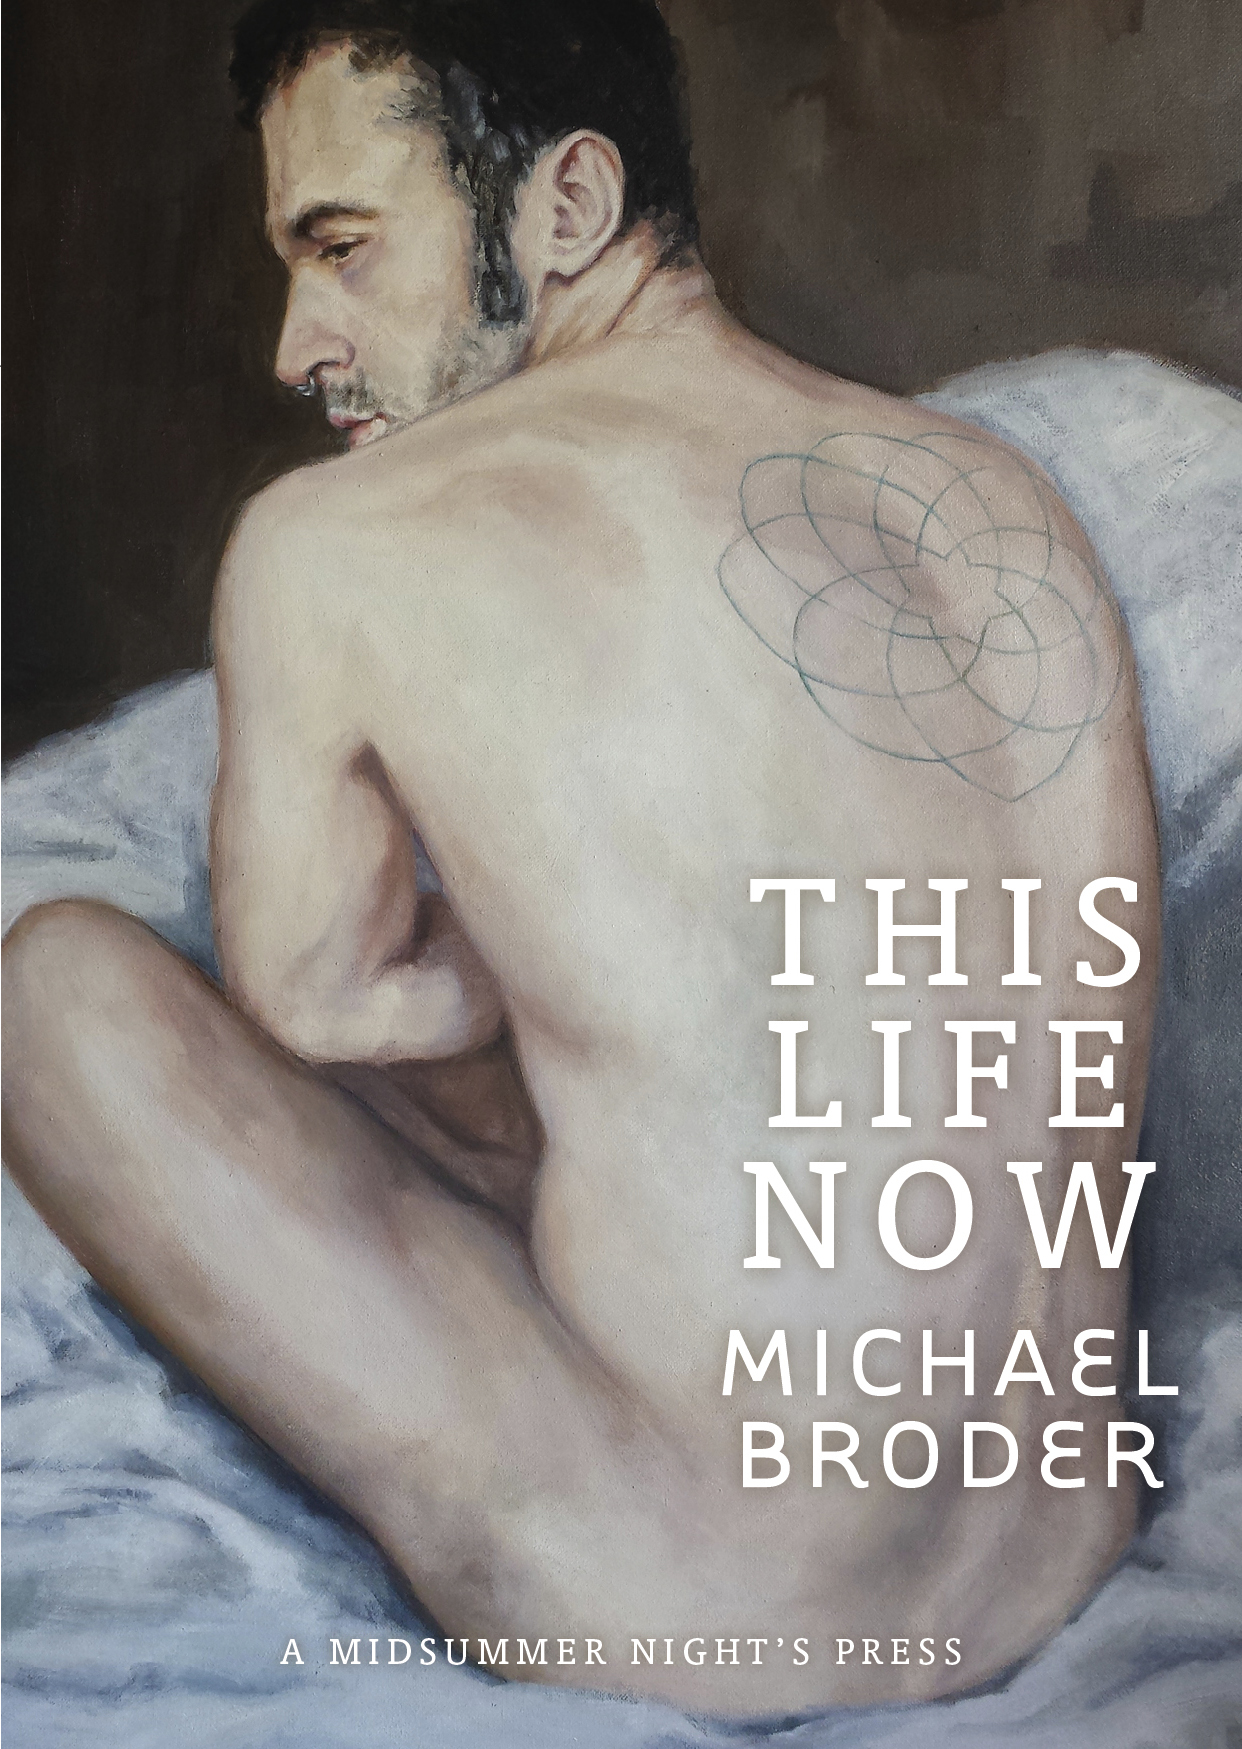 'This Life Now' by Michael Broder